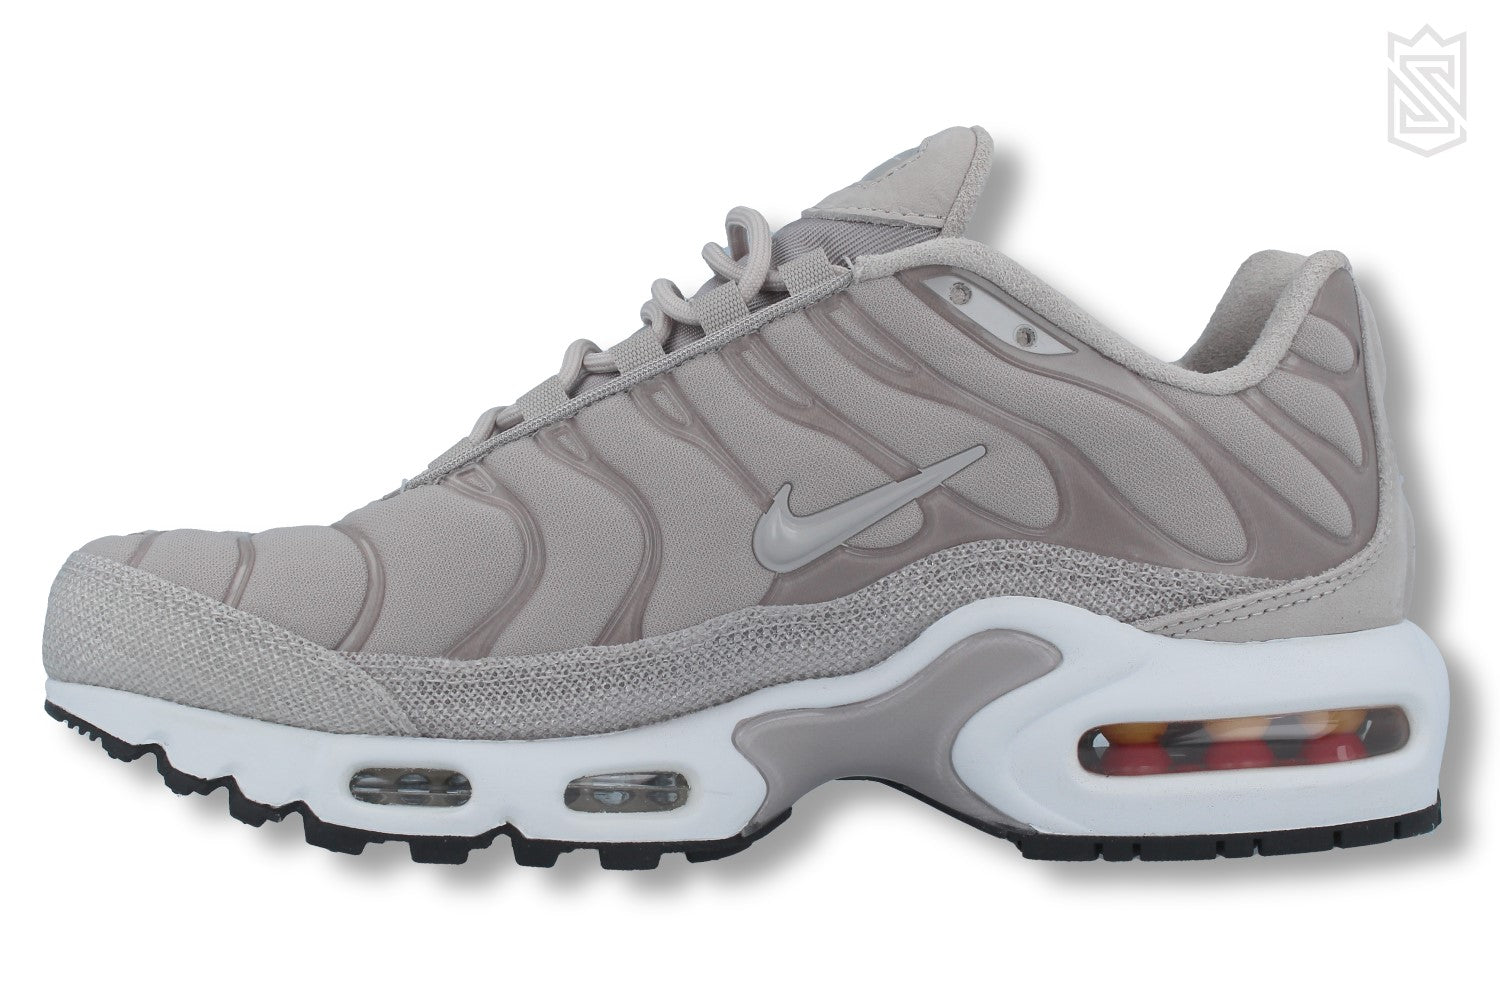 new product 4e970 4b0ec WMNS Air Max Plus Premium